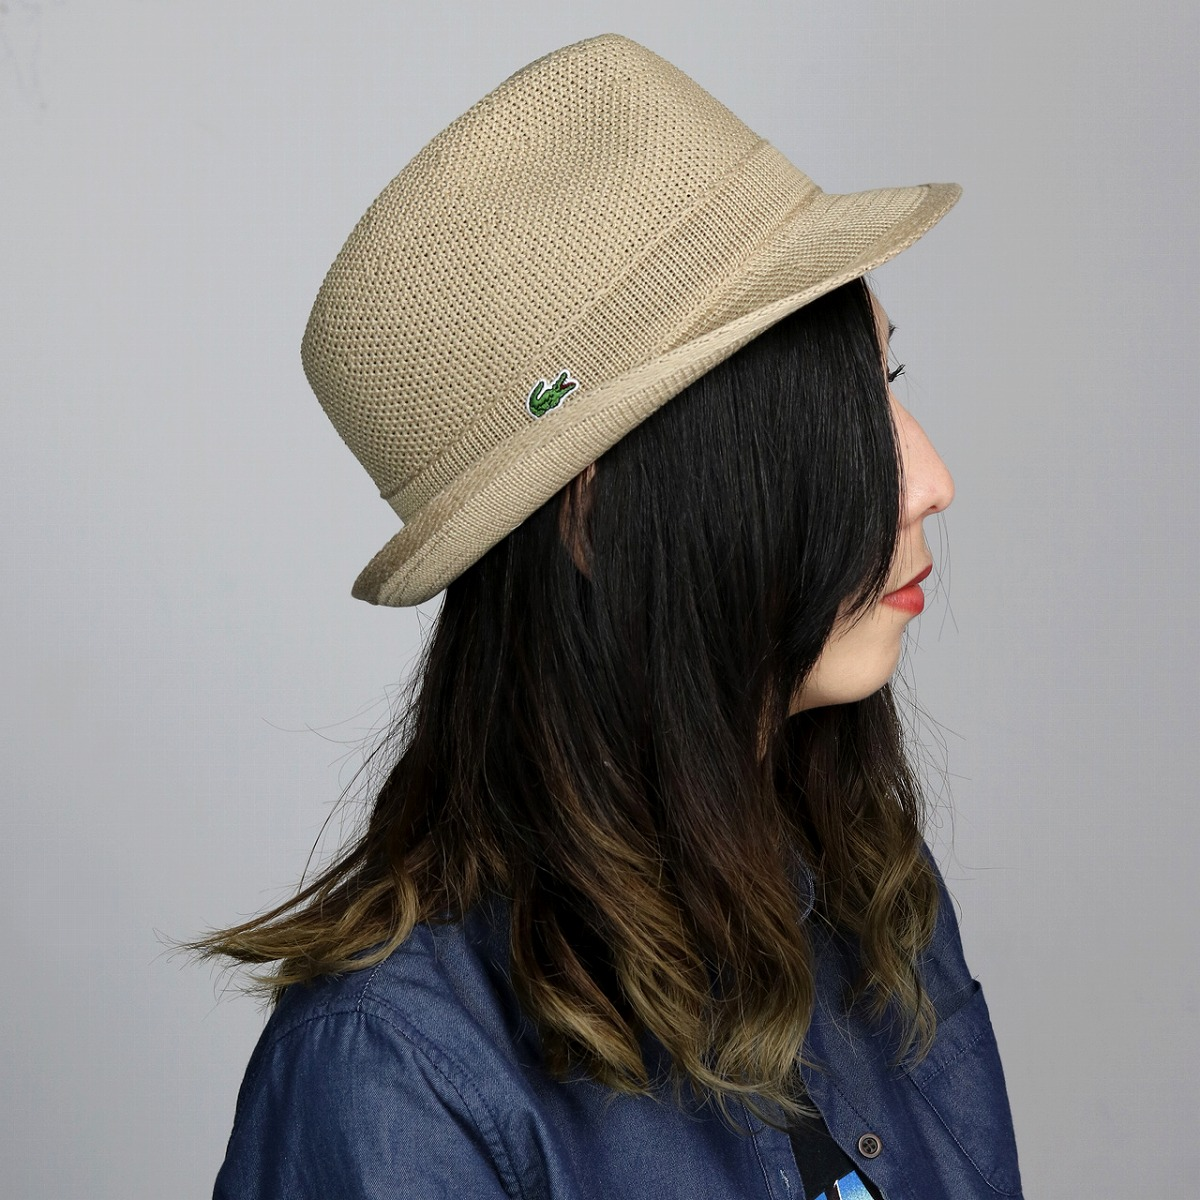 9a03b1f7c44 LACOSTE Lacoste spring summer fashion / evisu Polo knit hats caps Hat /  mens beige (hats caps Cap casual fashion hats spring summer in folding hat  for ...